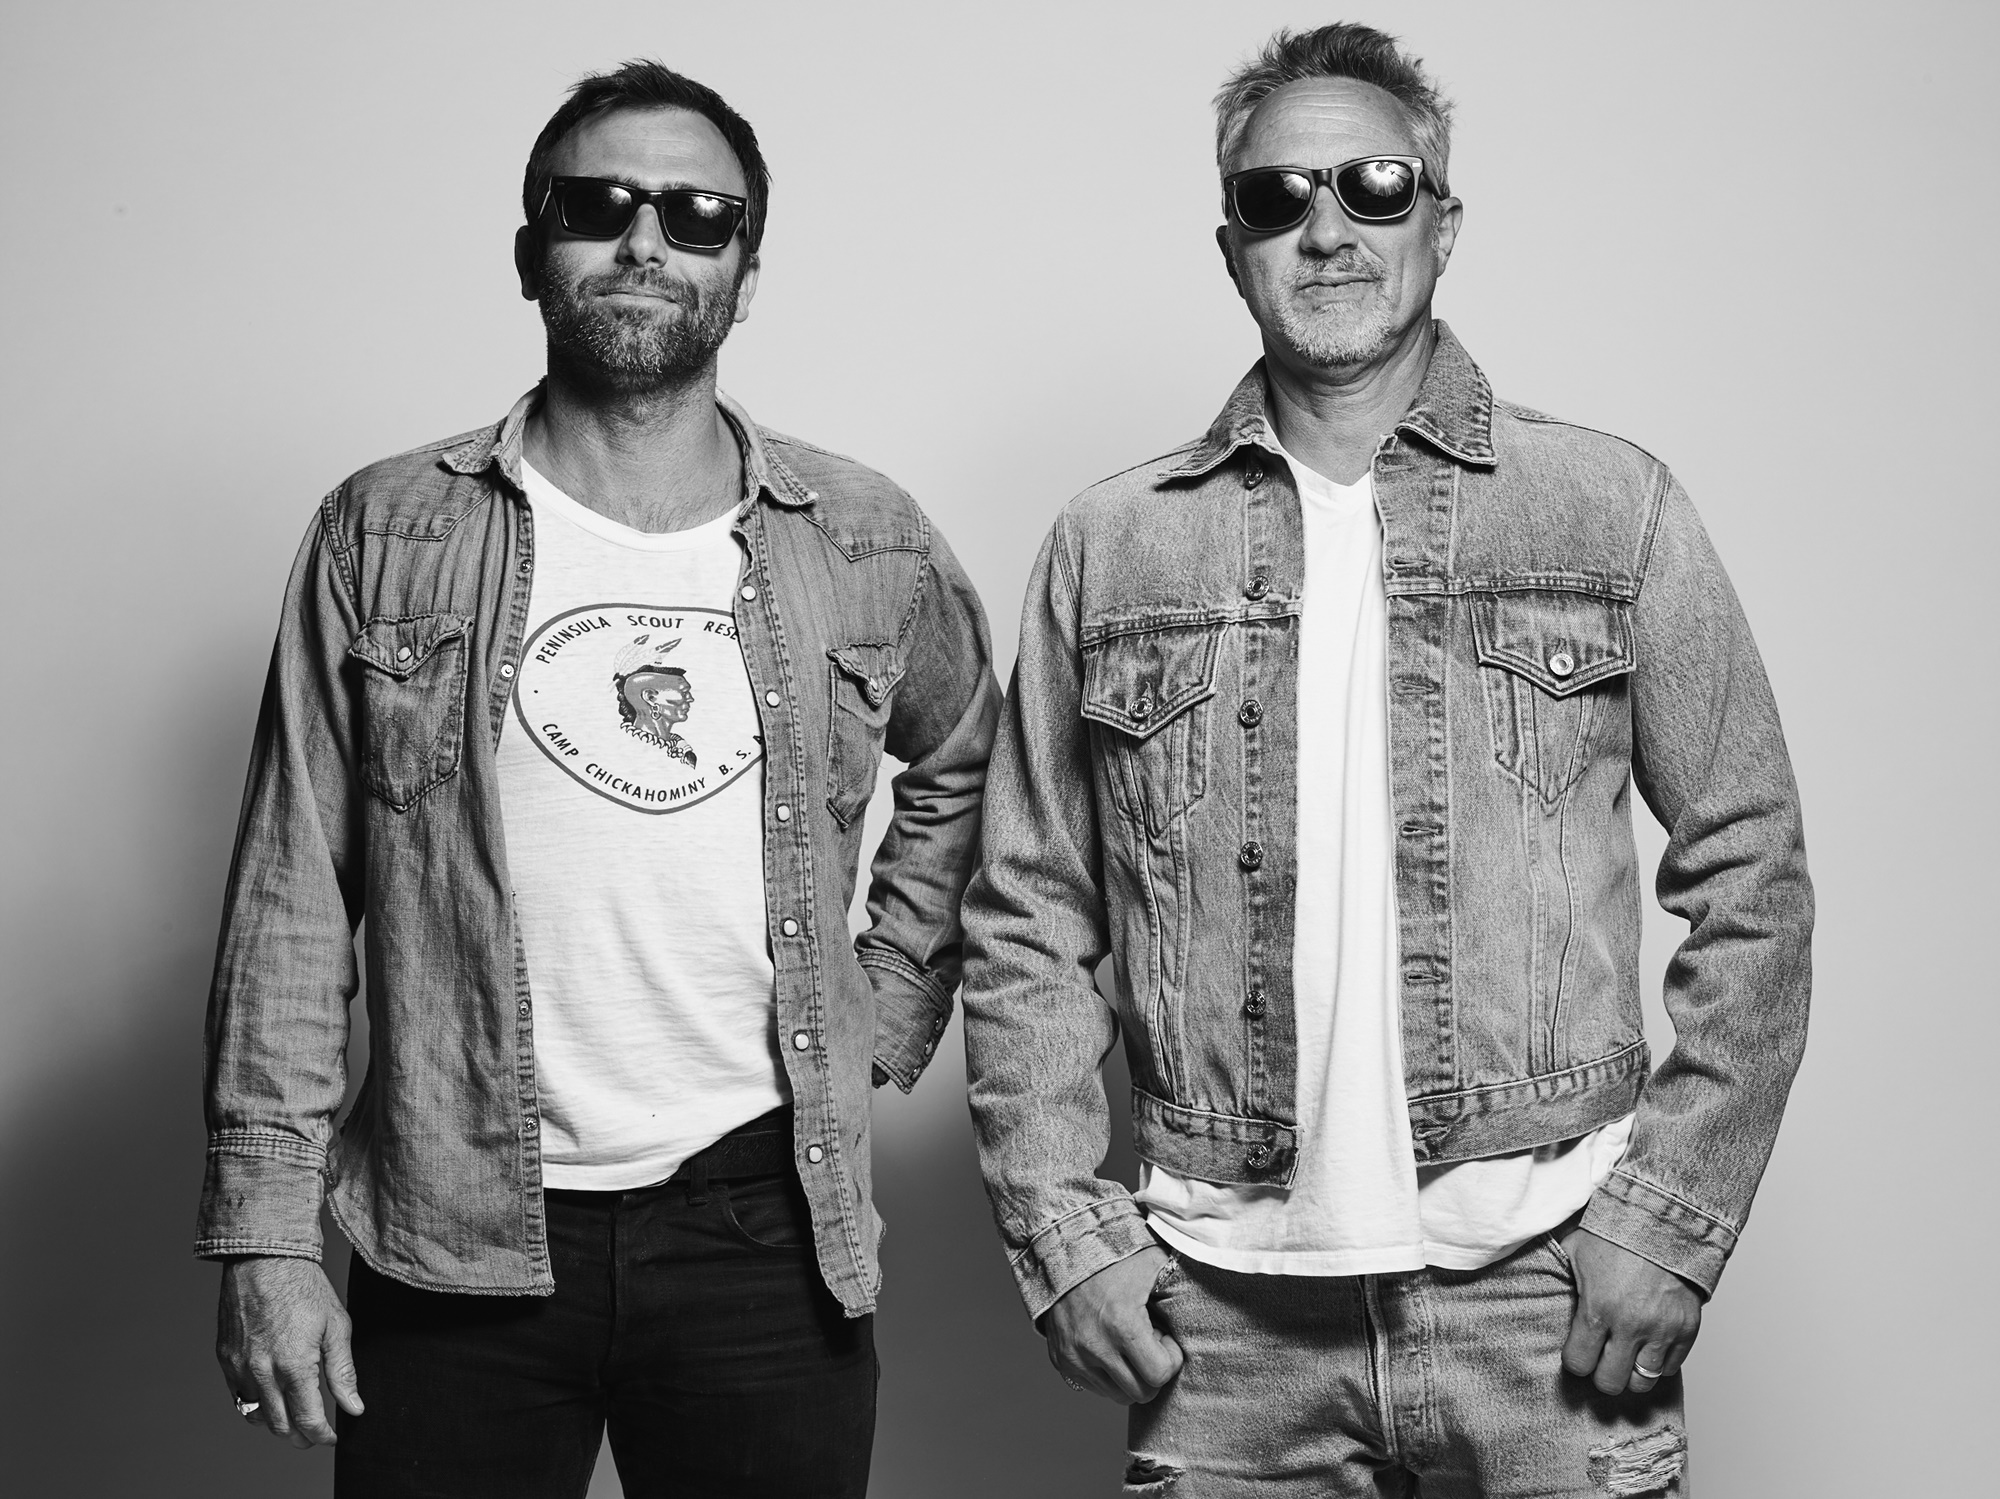 INTERVIEW: JAMIE MAZUR & SEAN BARRON - The RE/DONE designers talk 'upcycling' and why vintage denim is so special.